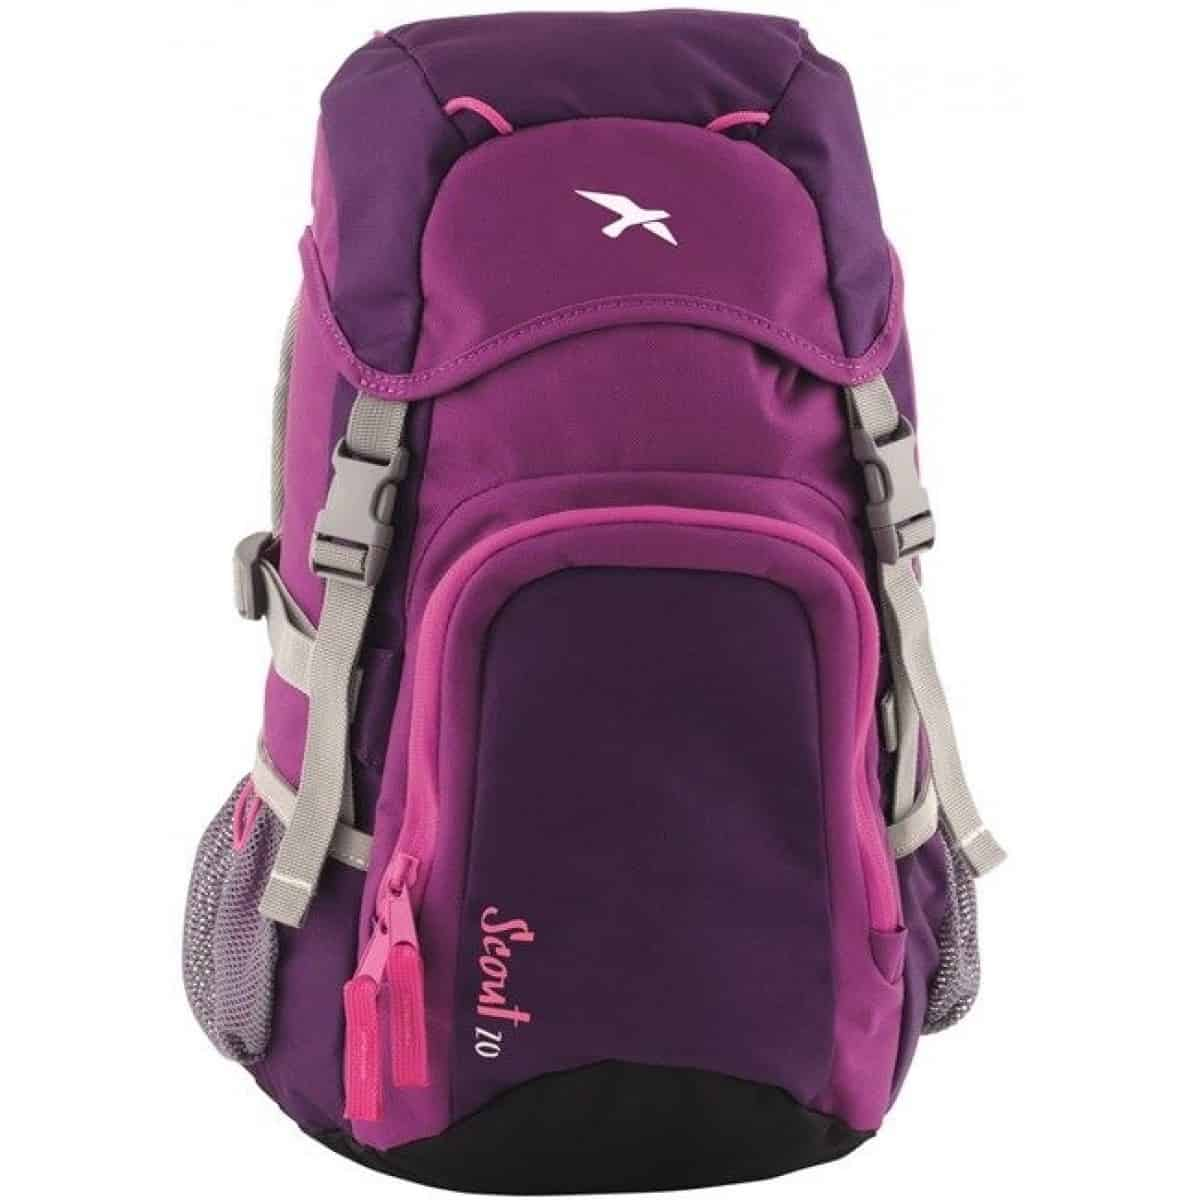 Easy Camp Patrol Purple